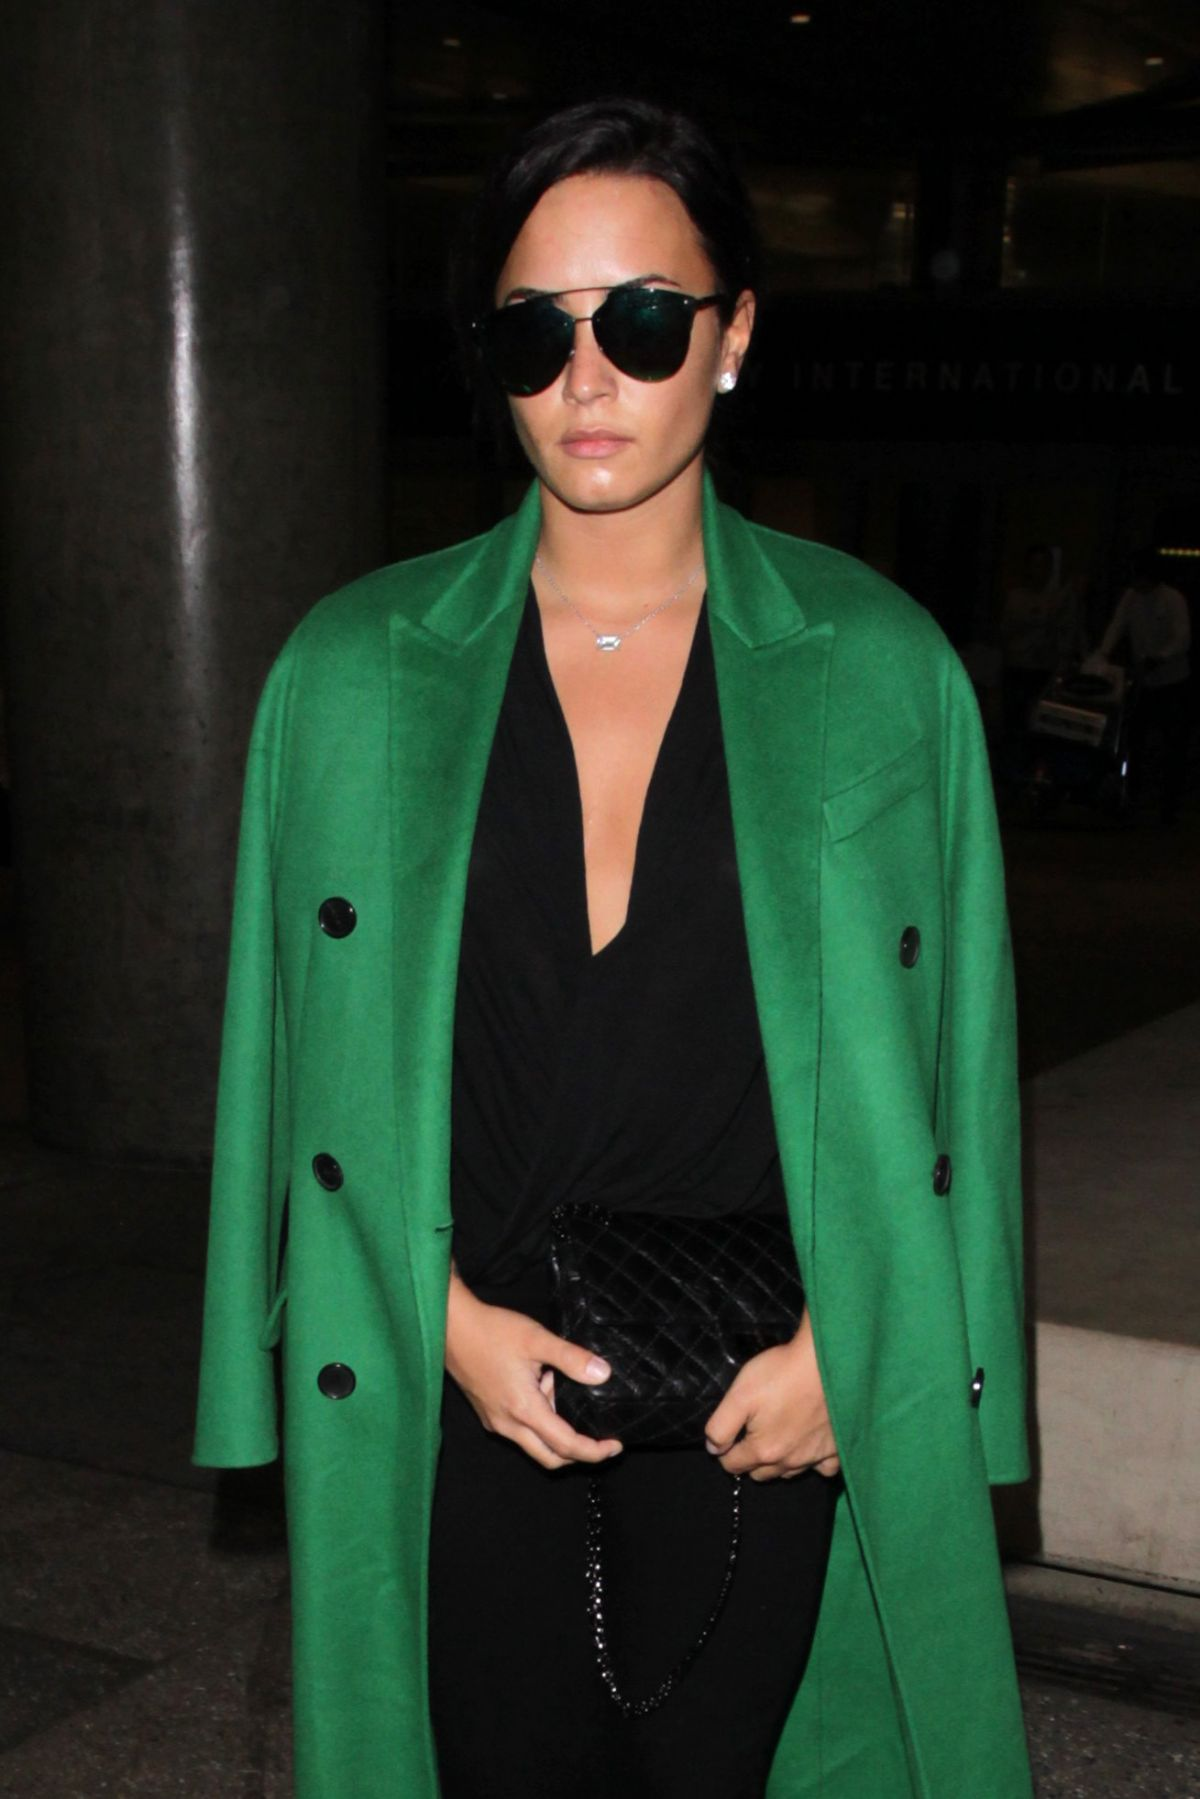 DEMI LOVATO at LAX Airport in Los Angeles 02/05/2017